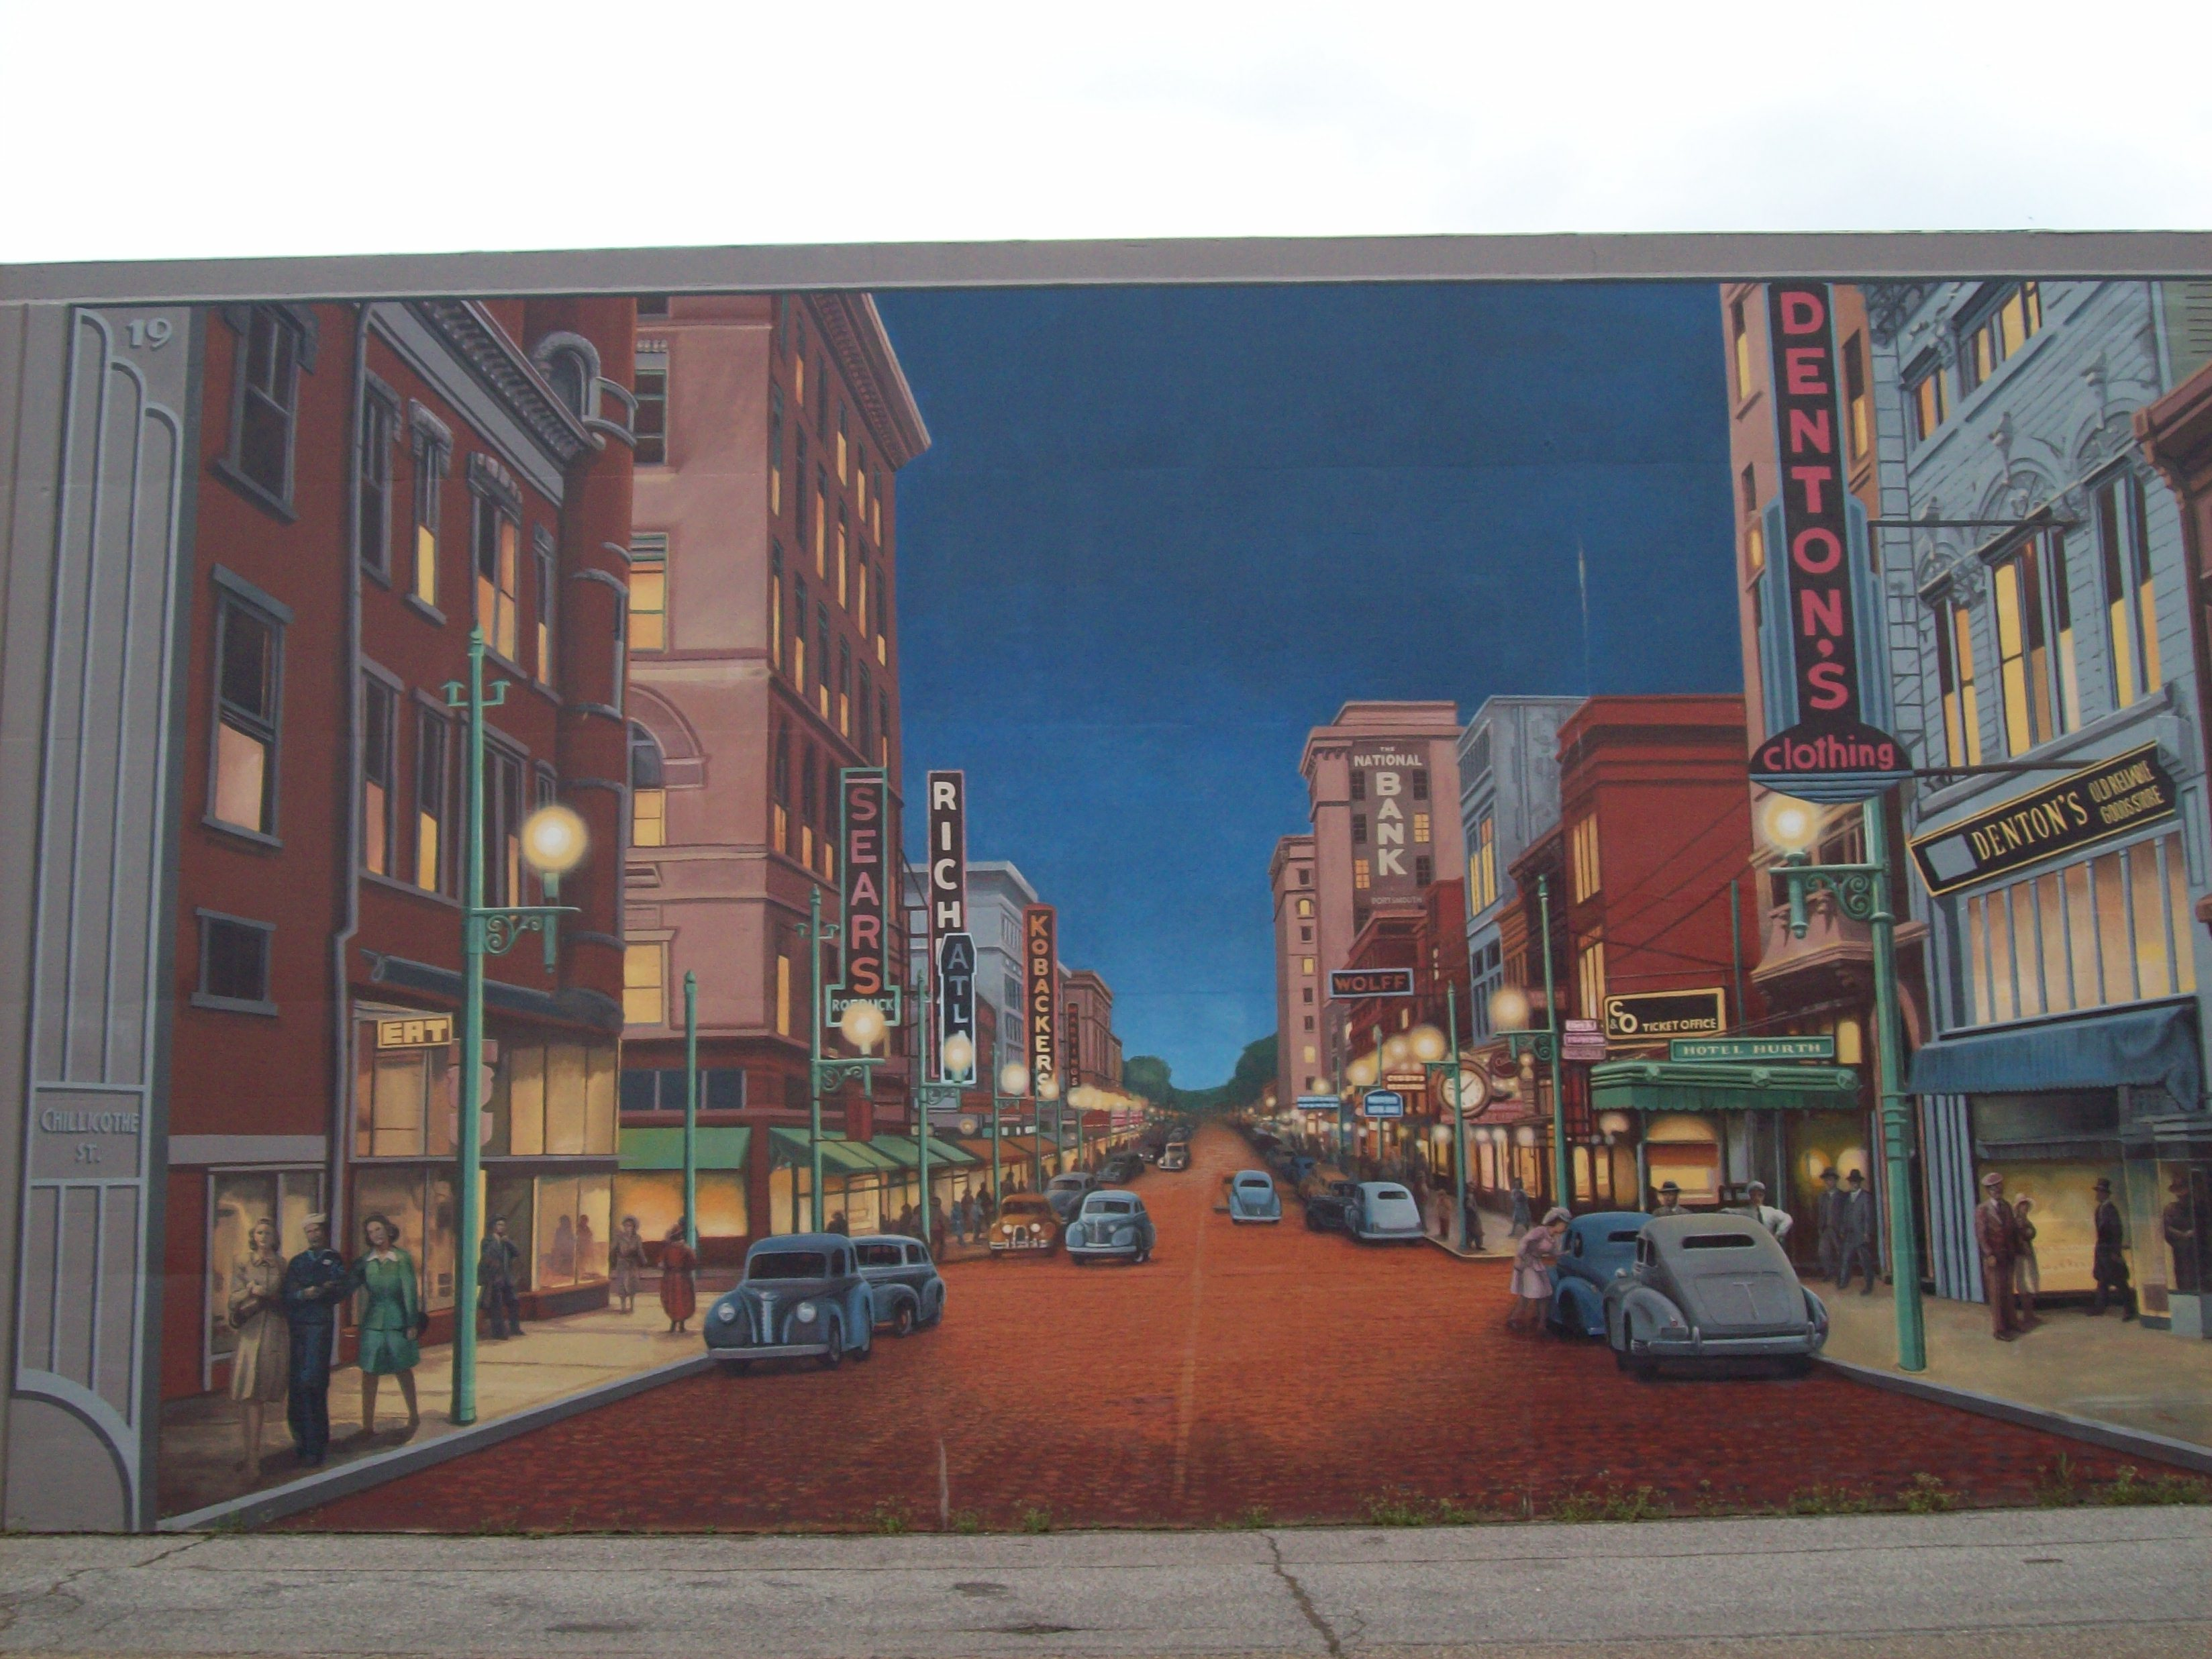 Portsmouth, OH floodwall mural: Chilcothe Street